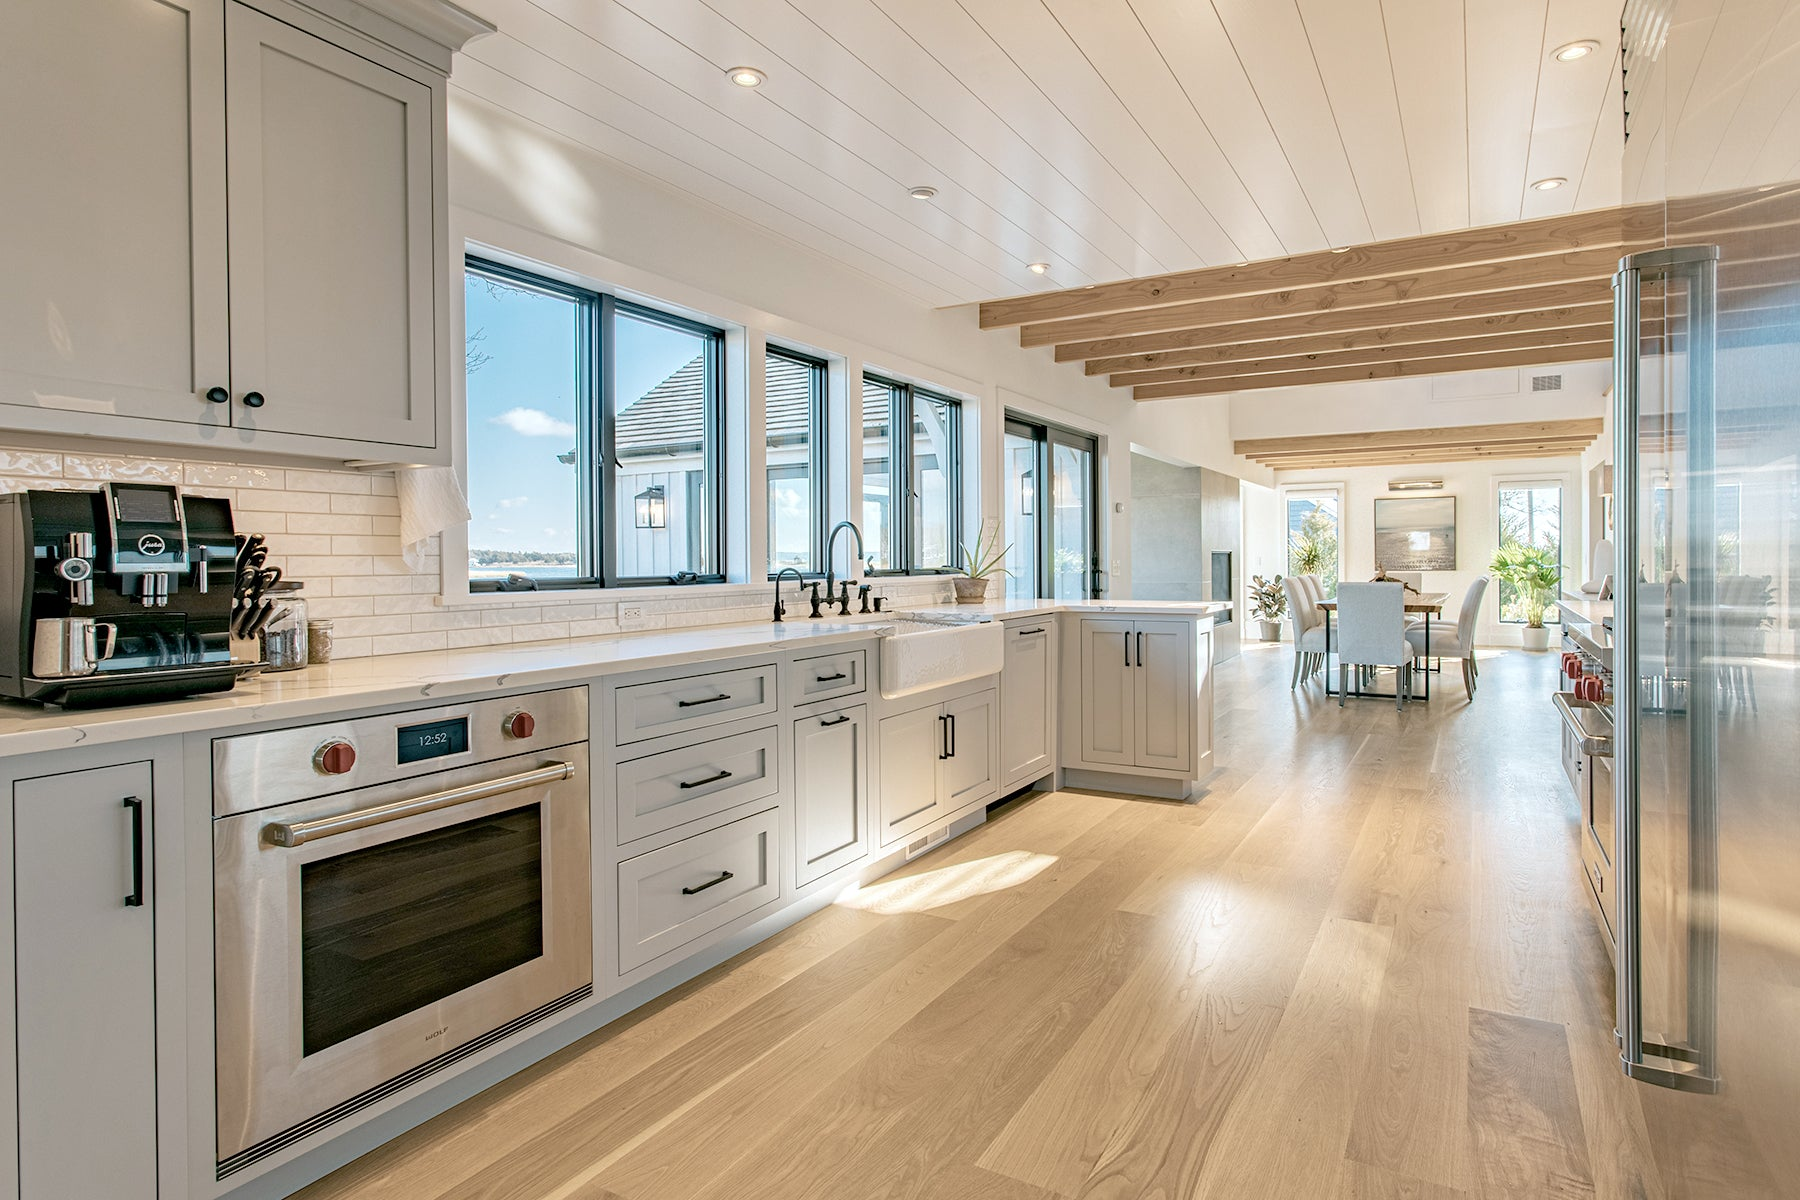 Ocean Blu Designs - Kitchen Modern Coastal and Transitional Designs for New York, Long Island, Connecticut, Hamptons, and Florida. Interior Designers